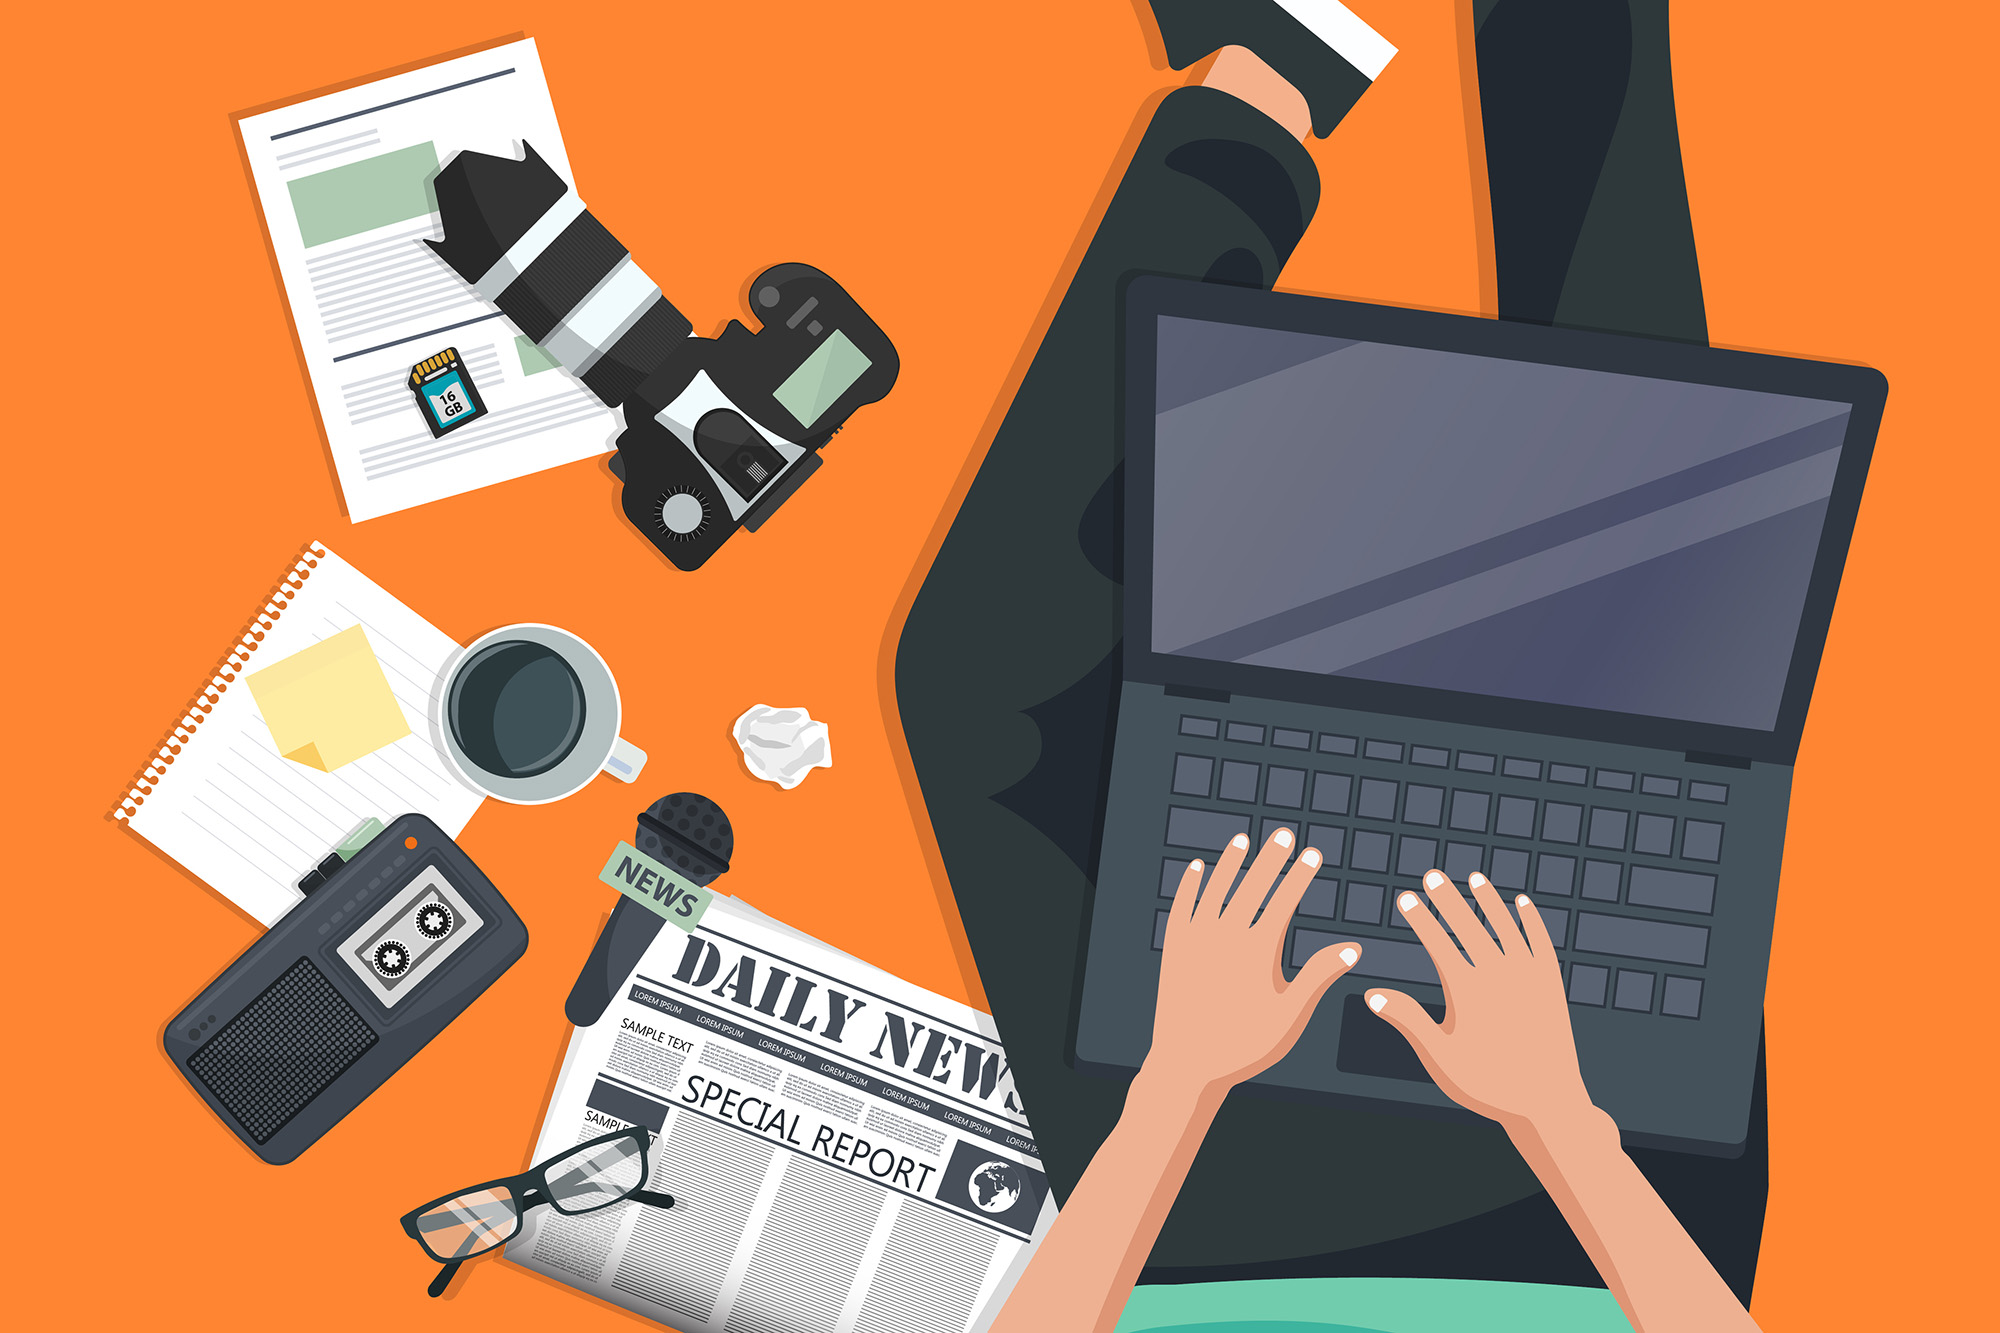 Stock illustration of a person typing on a laptop with various journalism tools around them, like a camera, newspaper, tape recorder, etc.